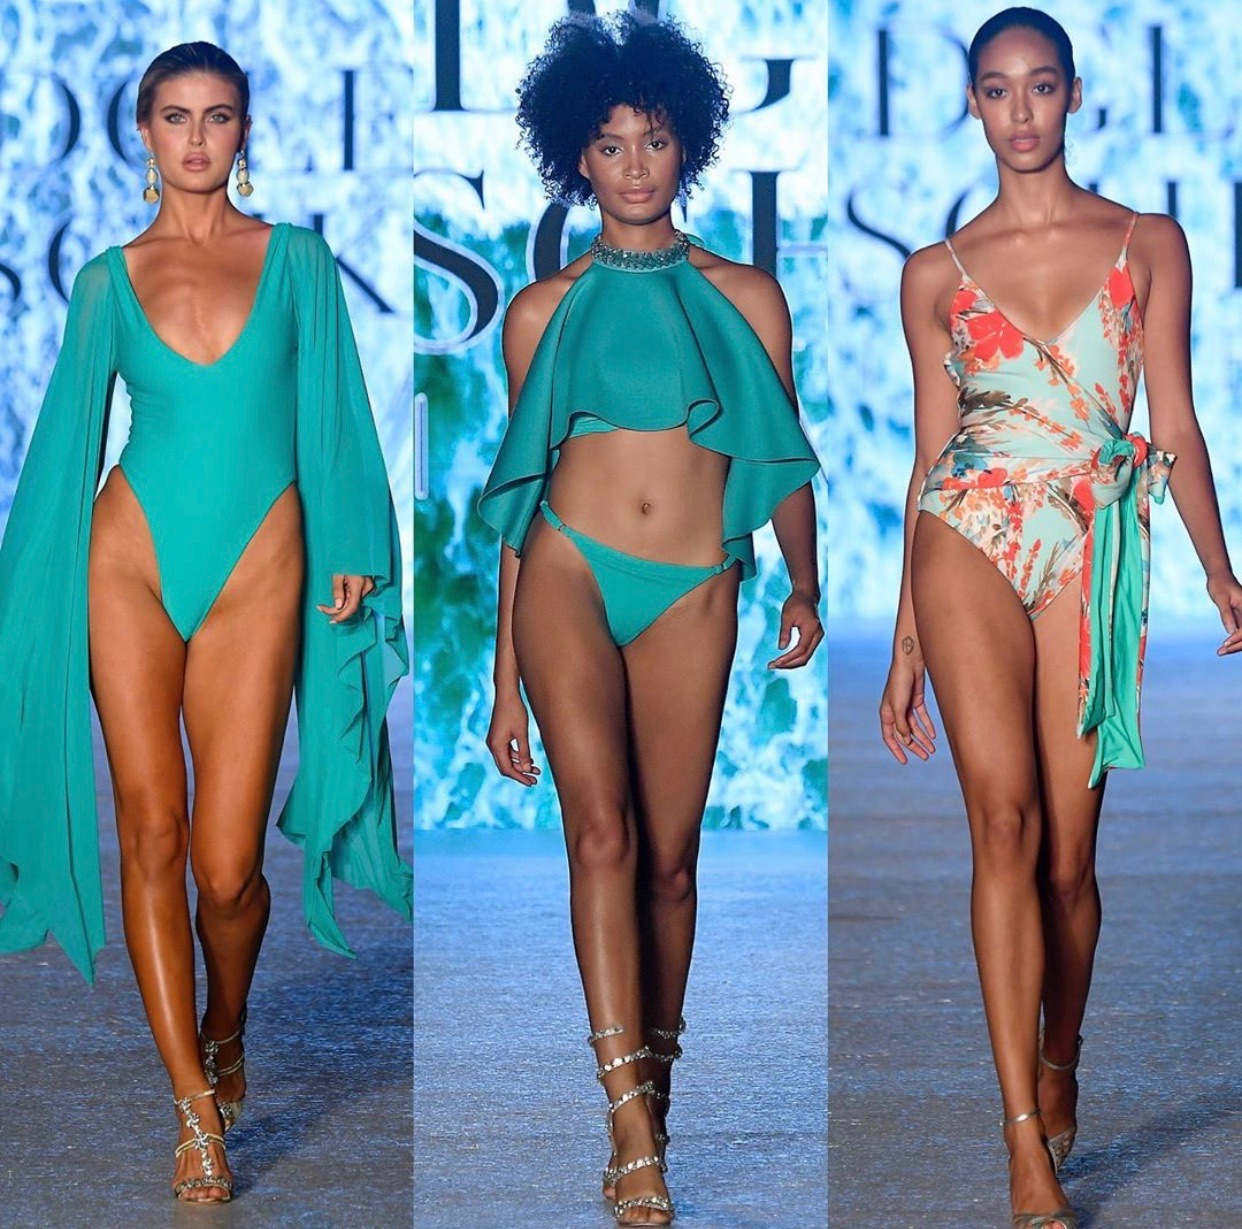 Badgley Mischka 2020 Swimwear Collection - Badgley Mischka Instagram